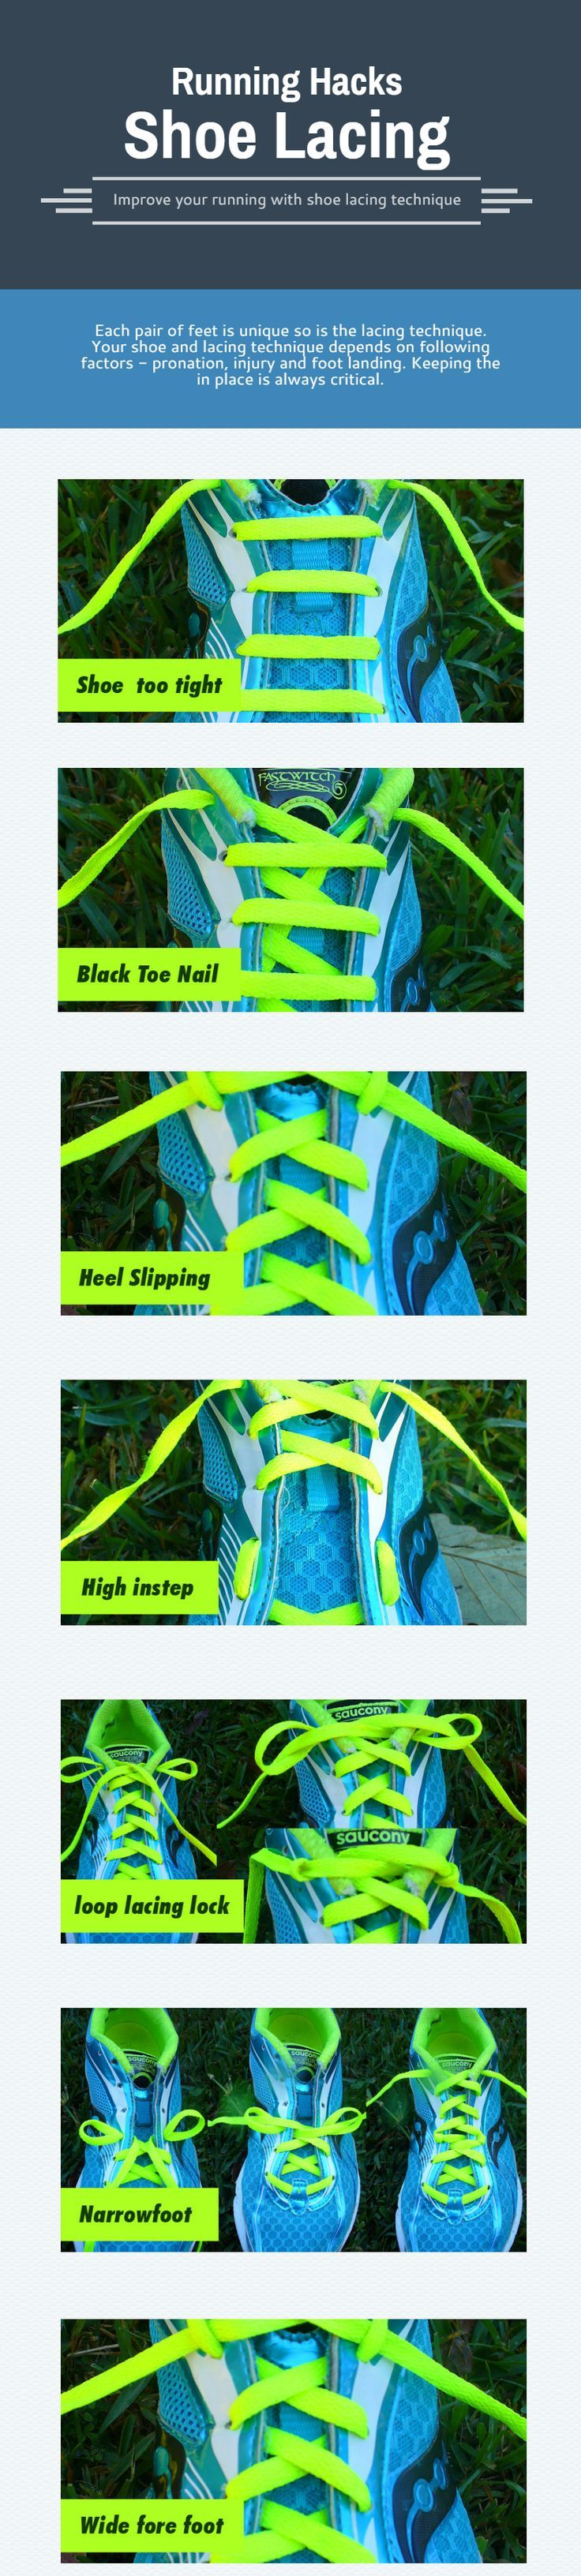 This is ultimate shoe lacing techniques that will help you improve your run.